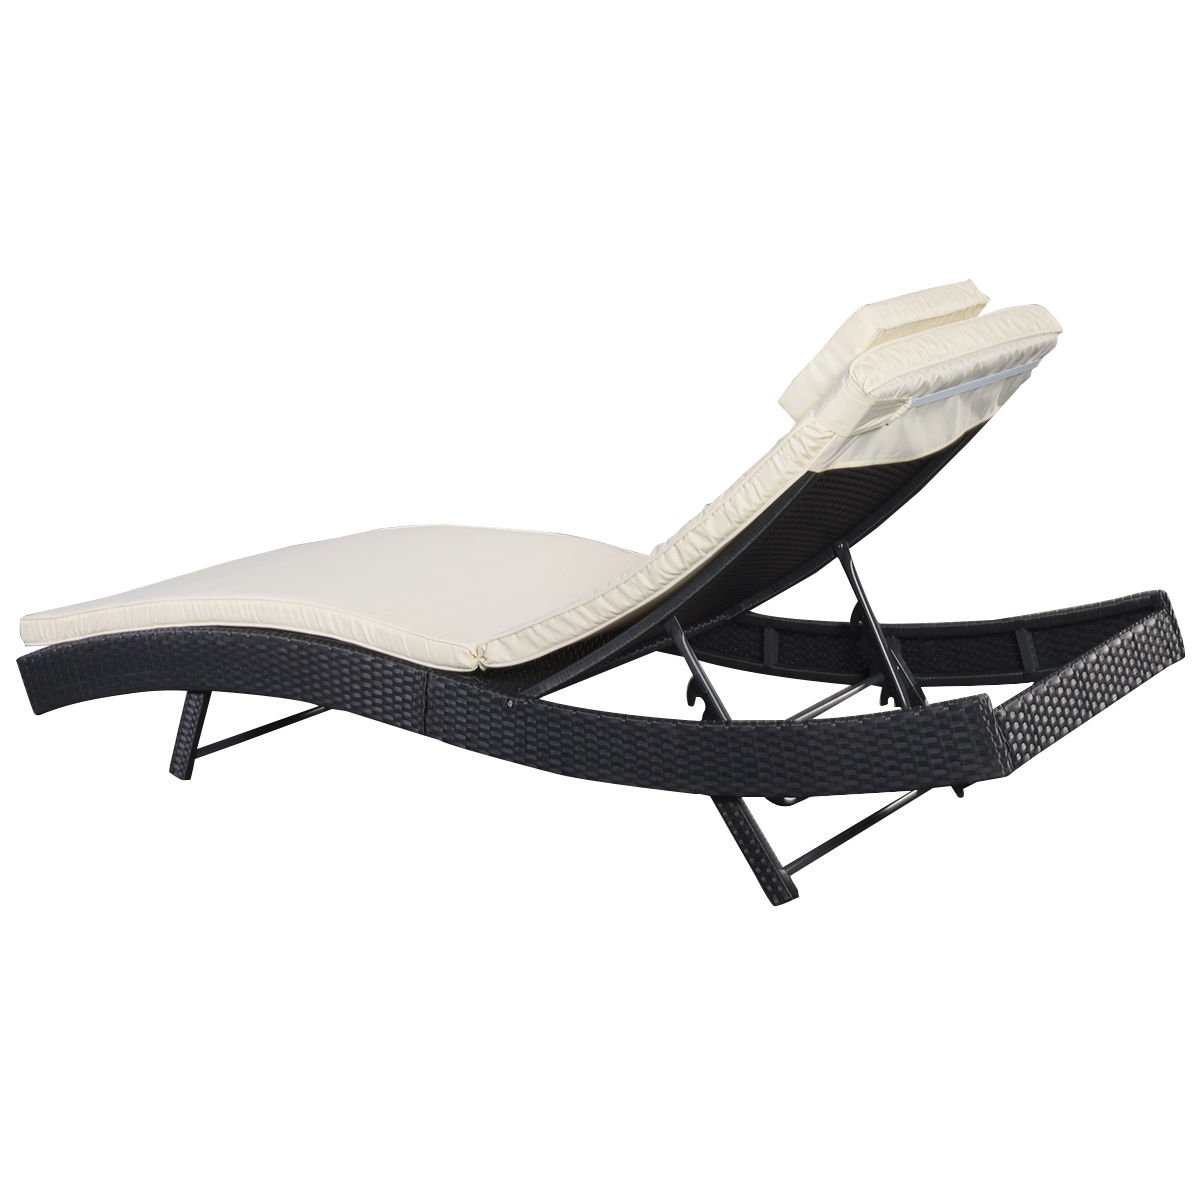 amazoncom tangkula adjustable pool chaise lounge chair outdoor patio furniture pe wicker wcushion patio lawn u0026 garden